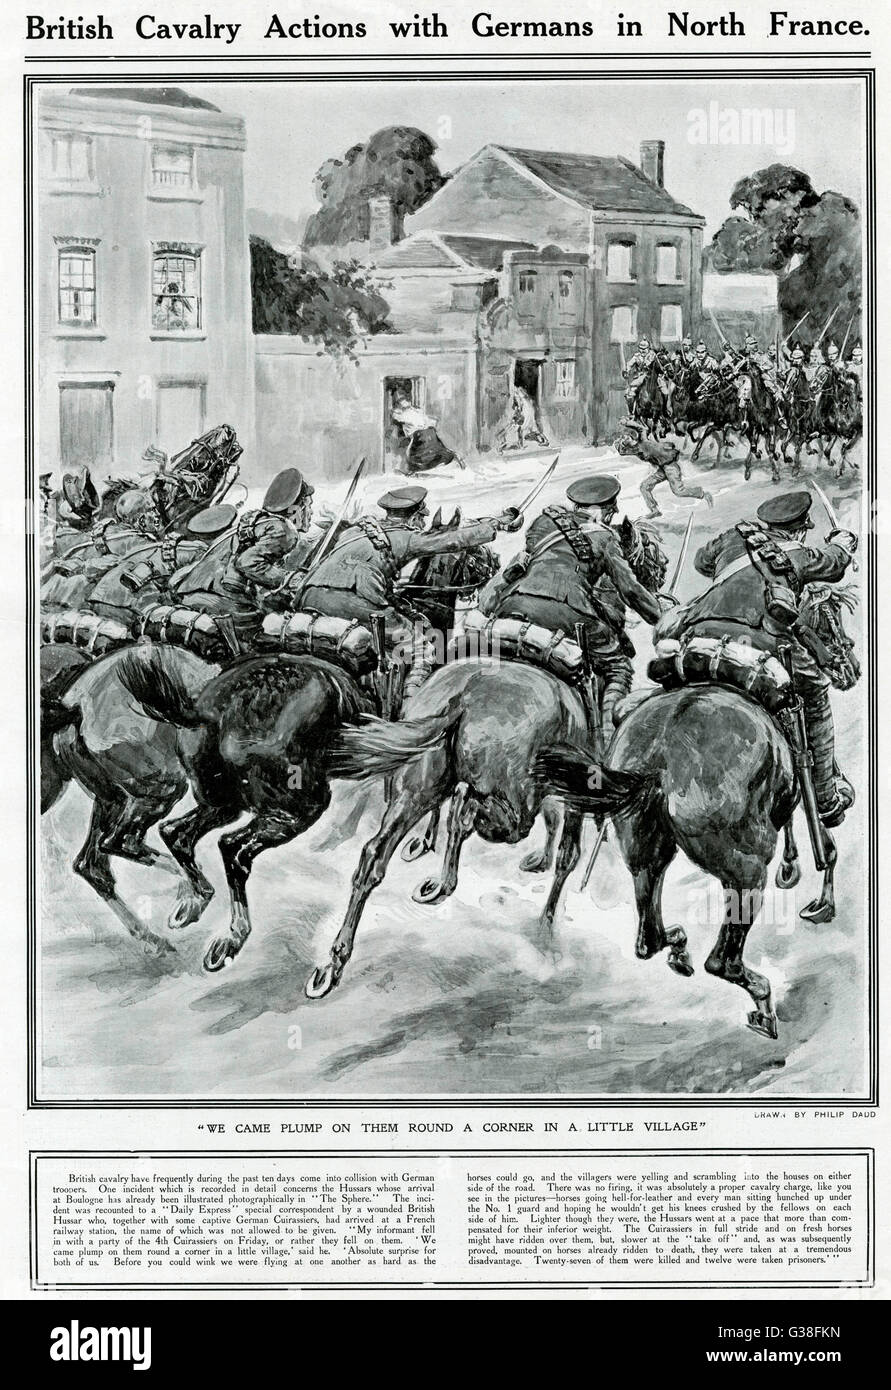 A cavalry fight in a French  village early in World War One. British Hussars rout  German Cuirassiers        Date: - Stock Image